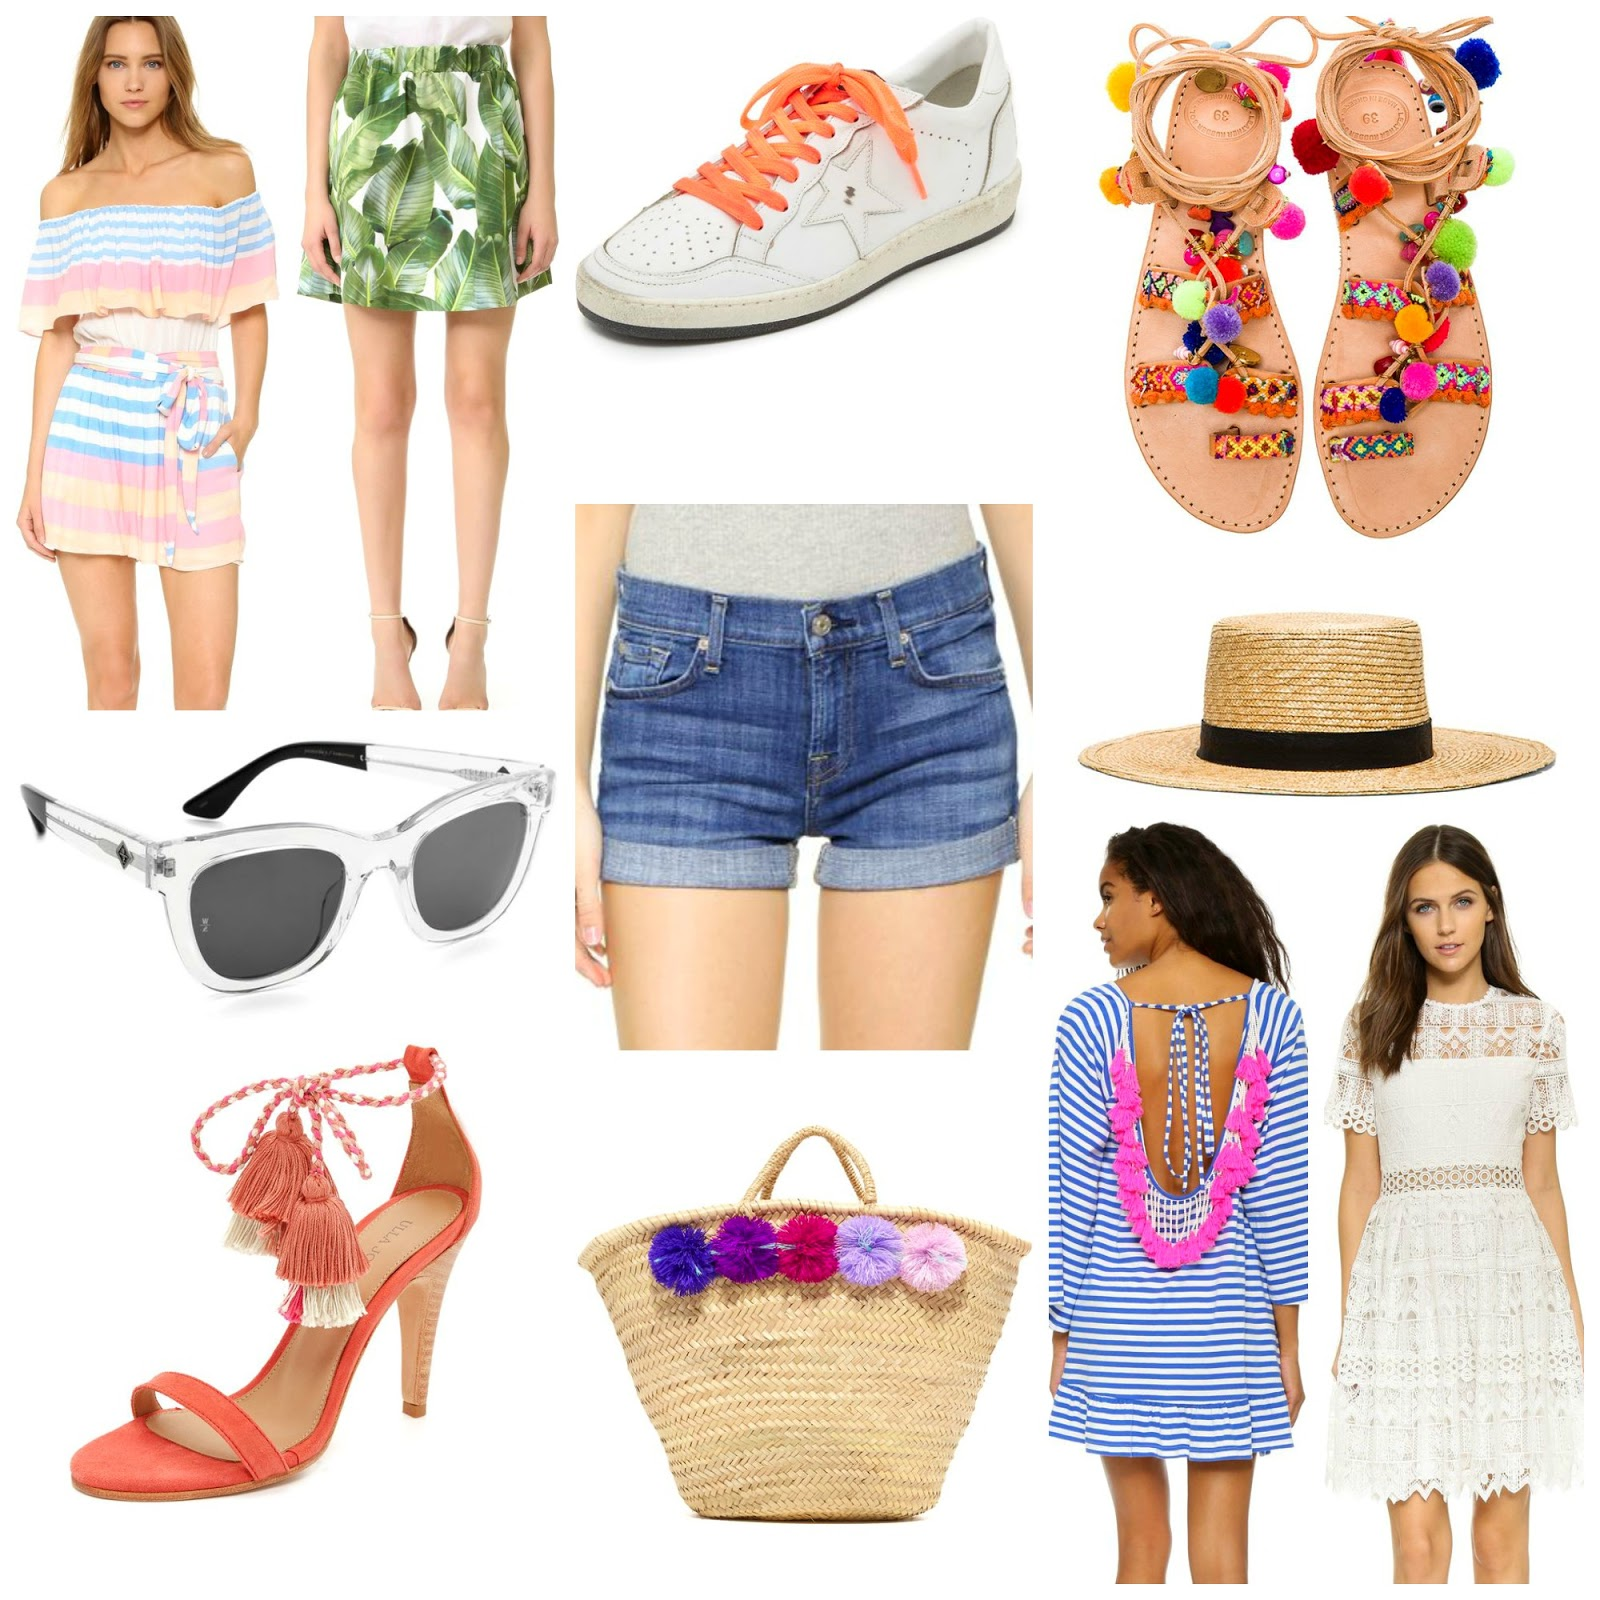 What Should Be In My Closet - alittlebitetc